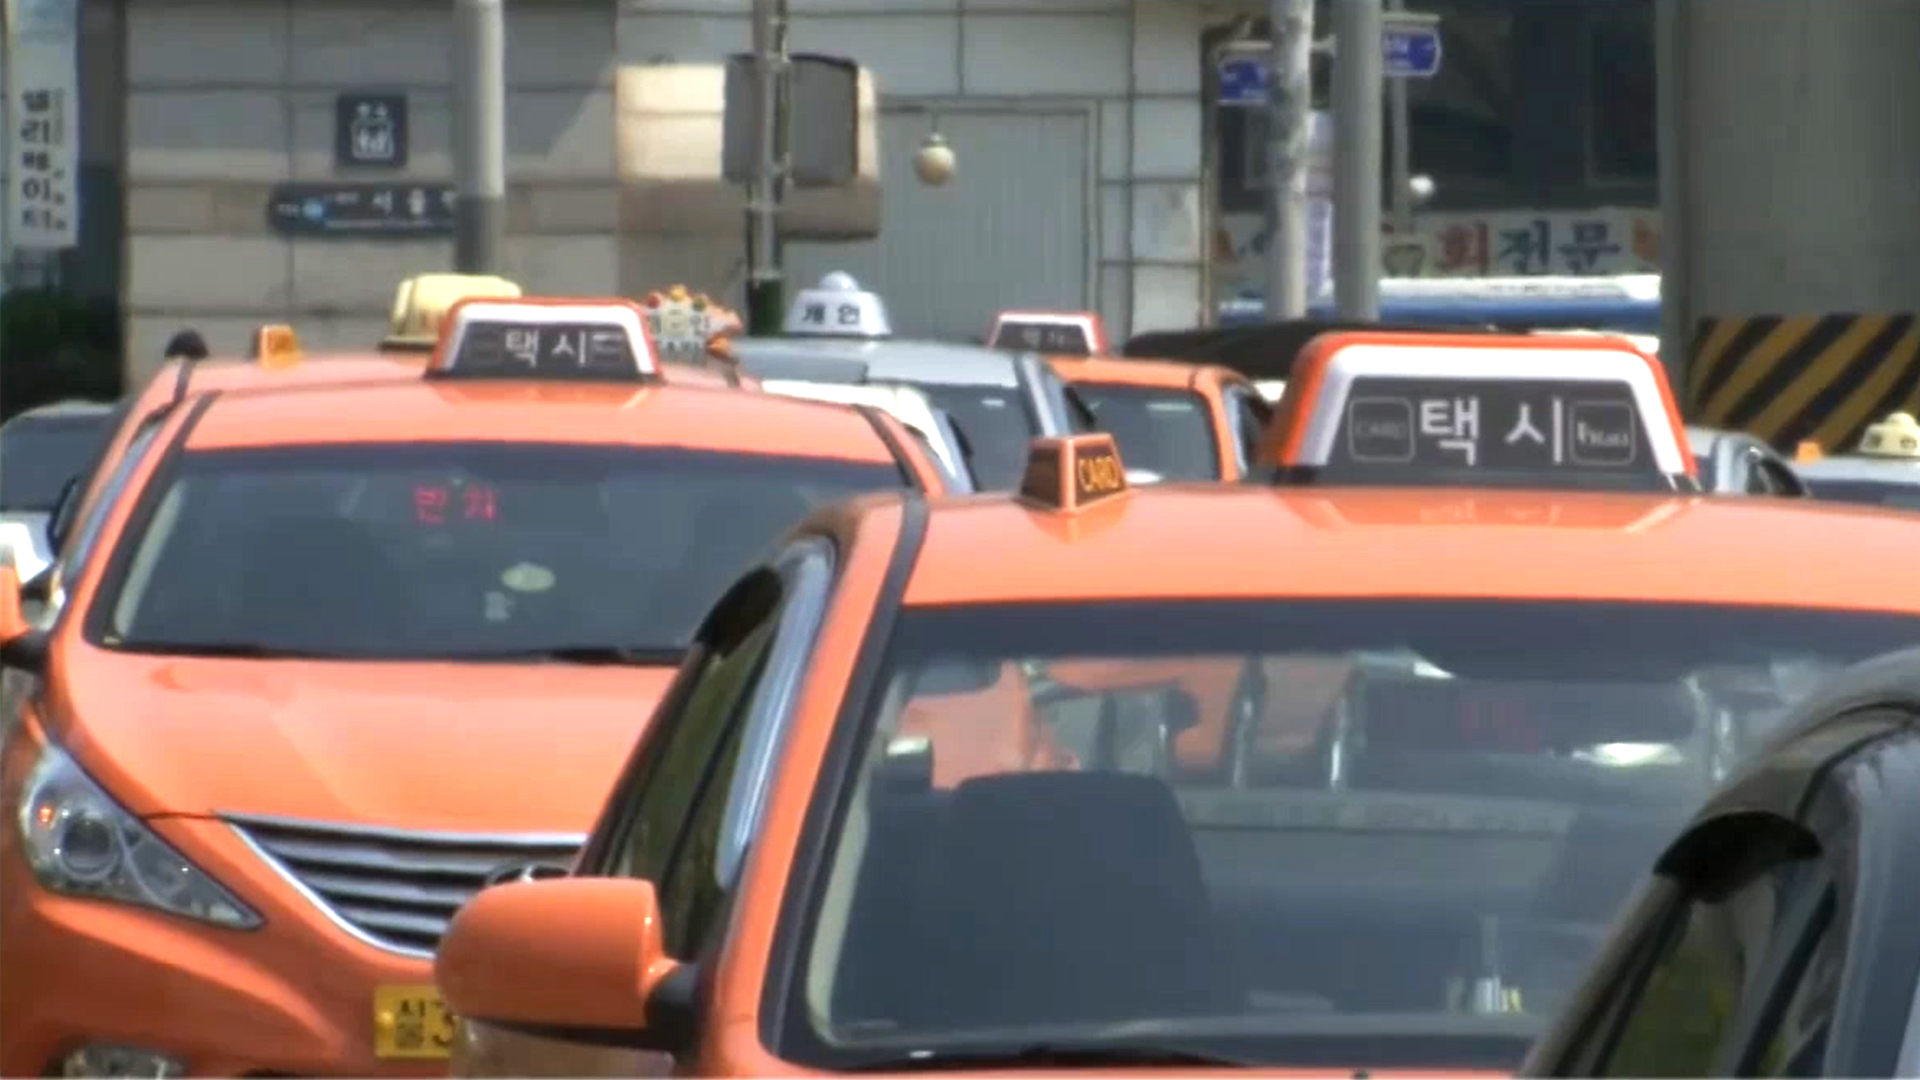 [Foreign Correspondents] 110-1 Controversy over Ride-Sharing Services